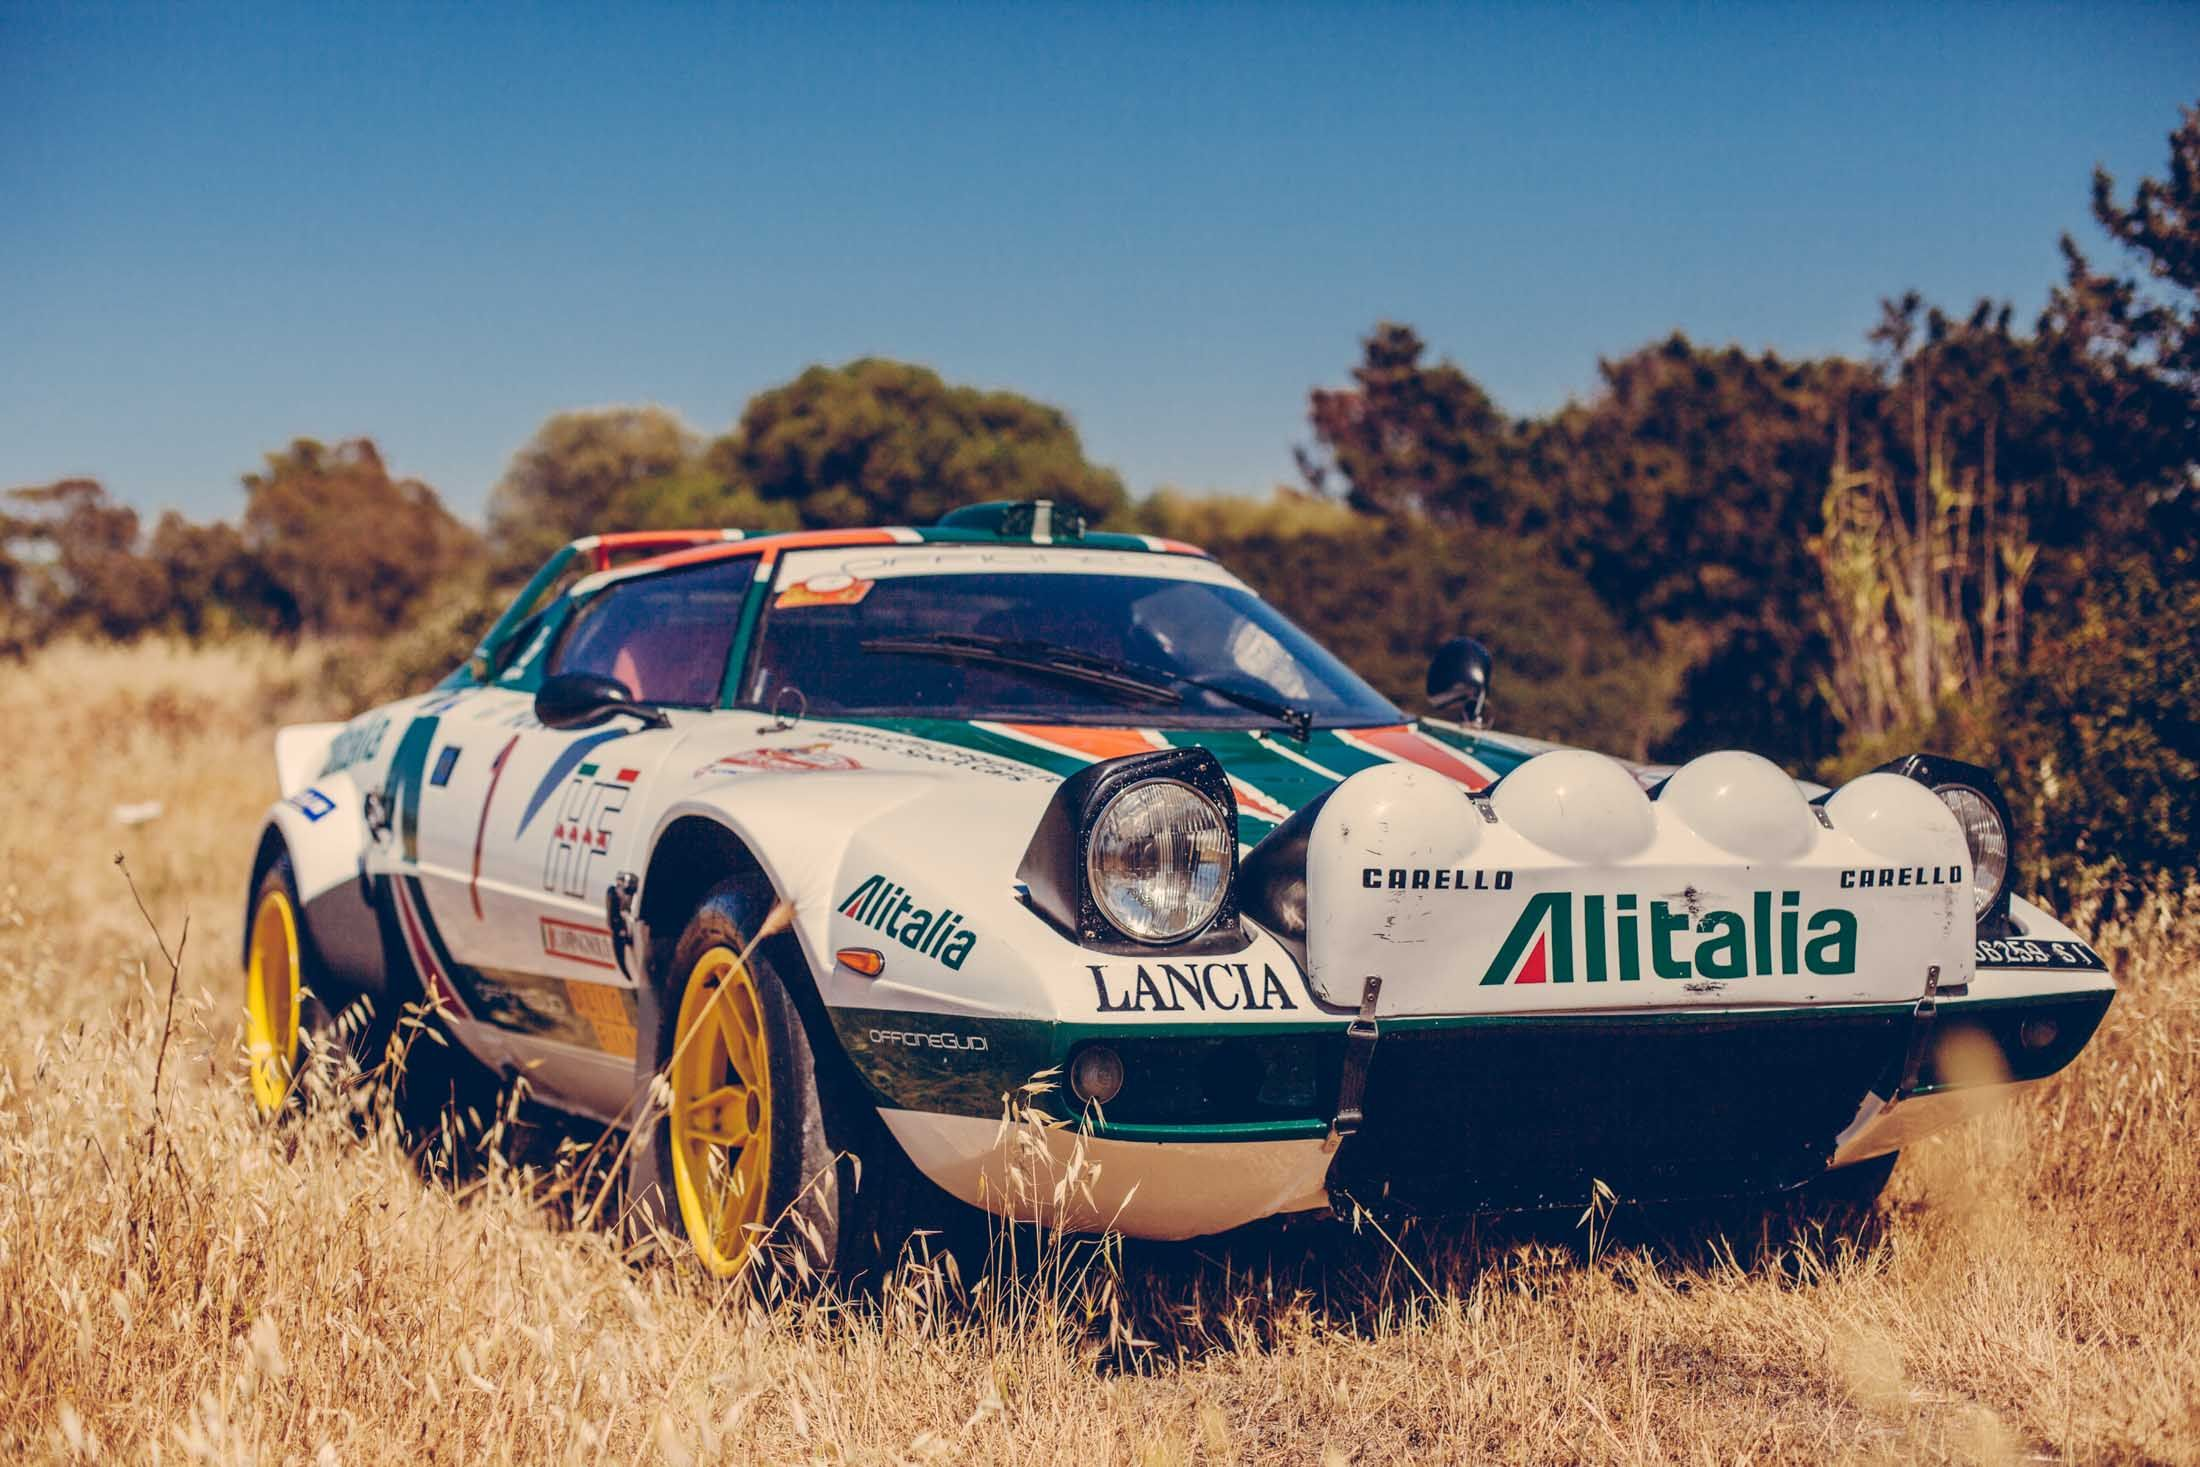 Stphane dufours porsche 917 models are now in the petrolicious stphane dufours porsche 917 models are now in the petrolicious shop just because this lancia stratos vanachro Images